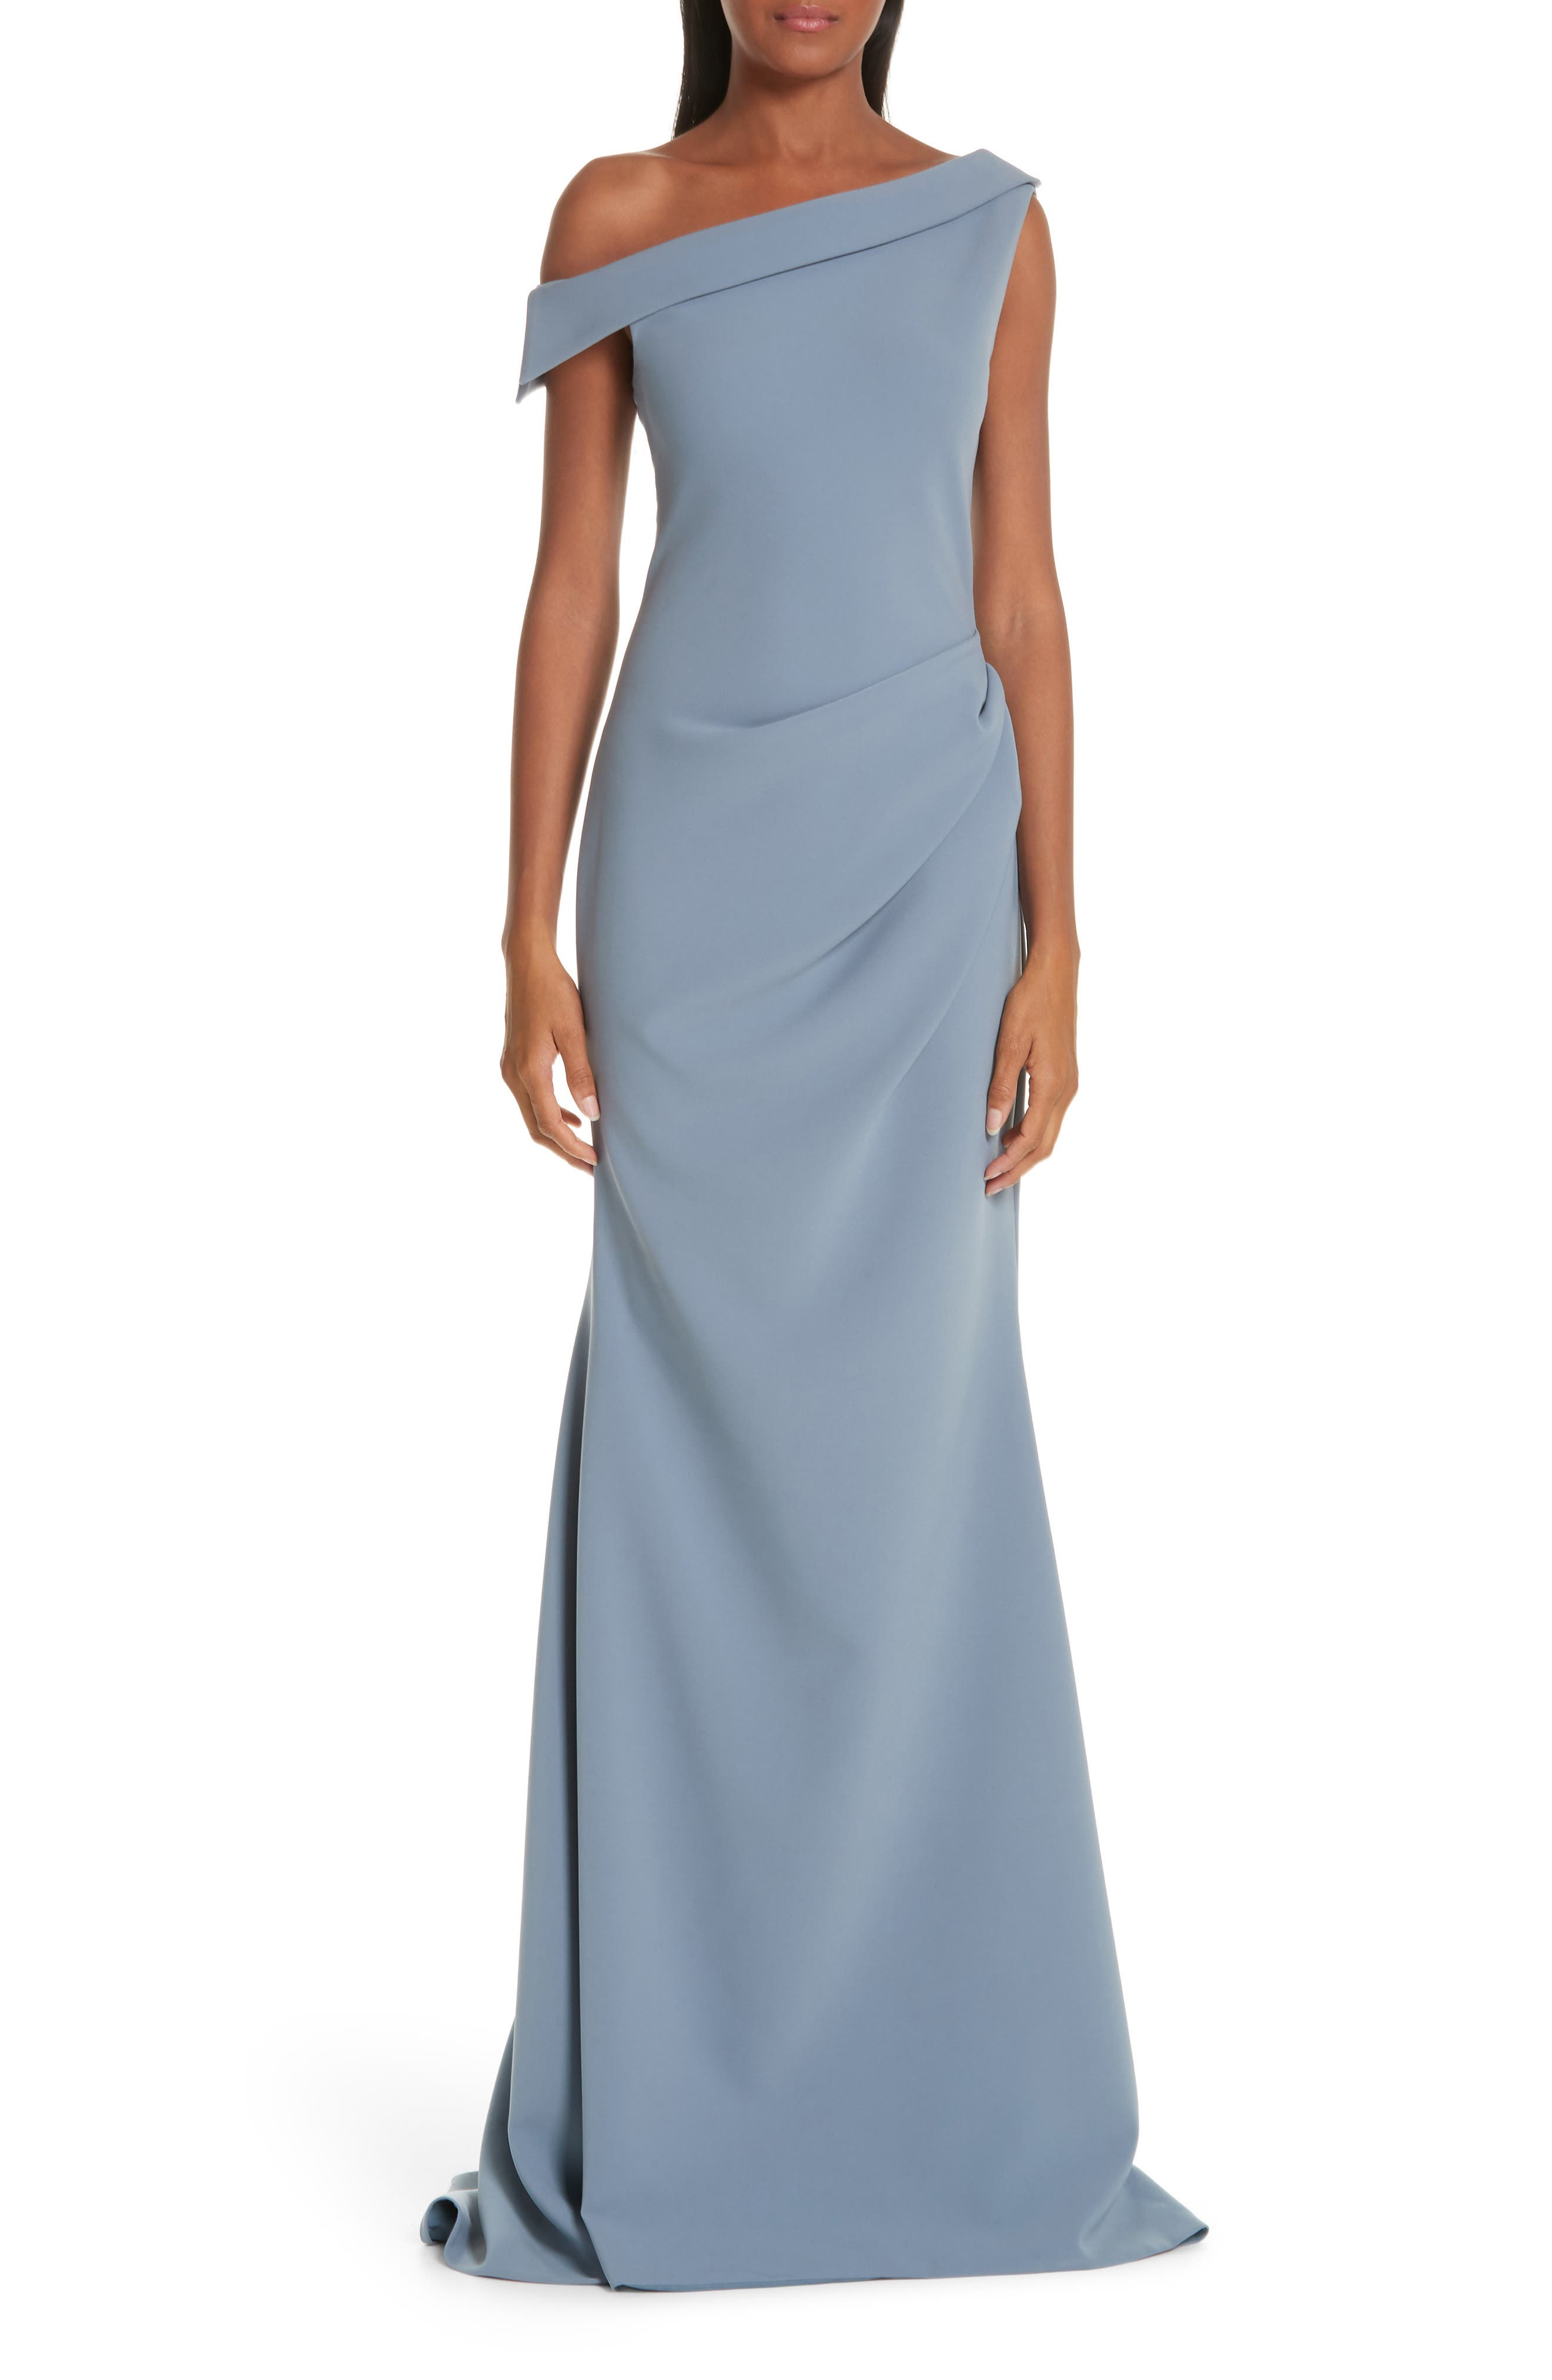 One-Shoulder Evening Dress,                             Main thumbnail 1, color,                             SHADOW BLUE